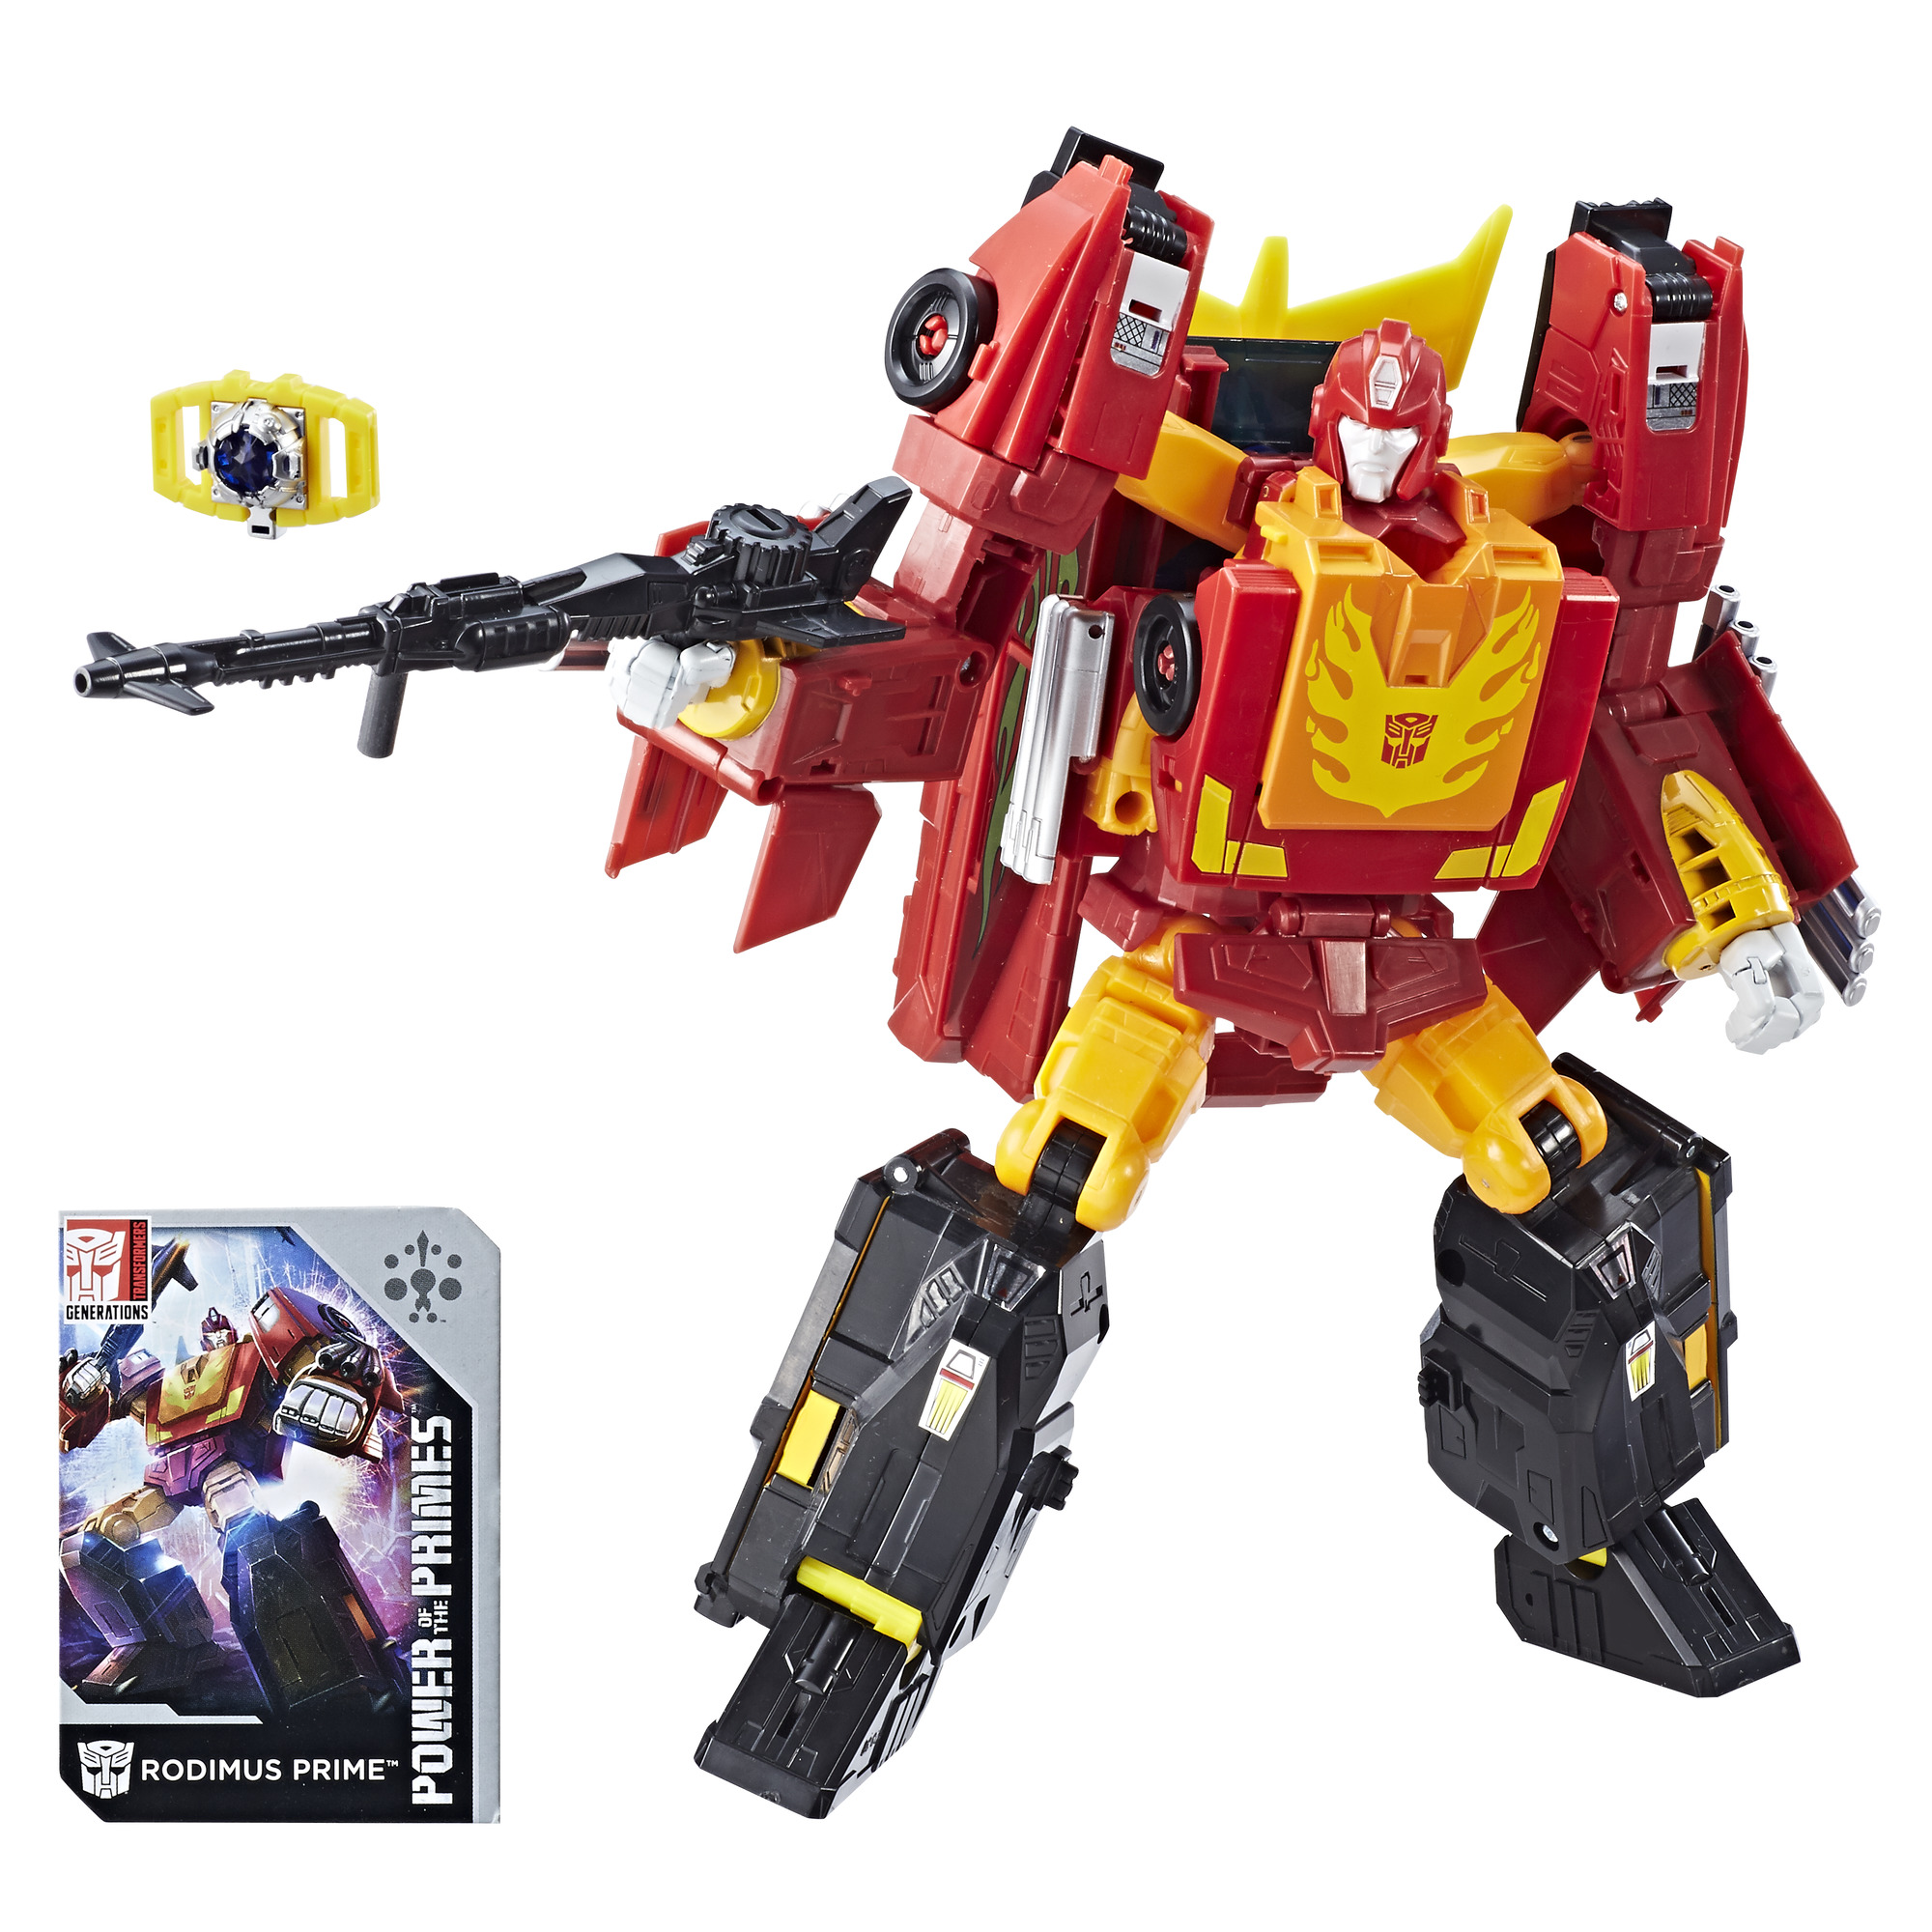 Transformers: Generations Power of the Primes Rodimus Prime